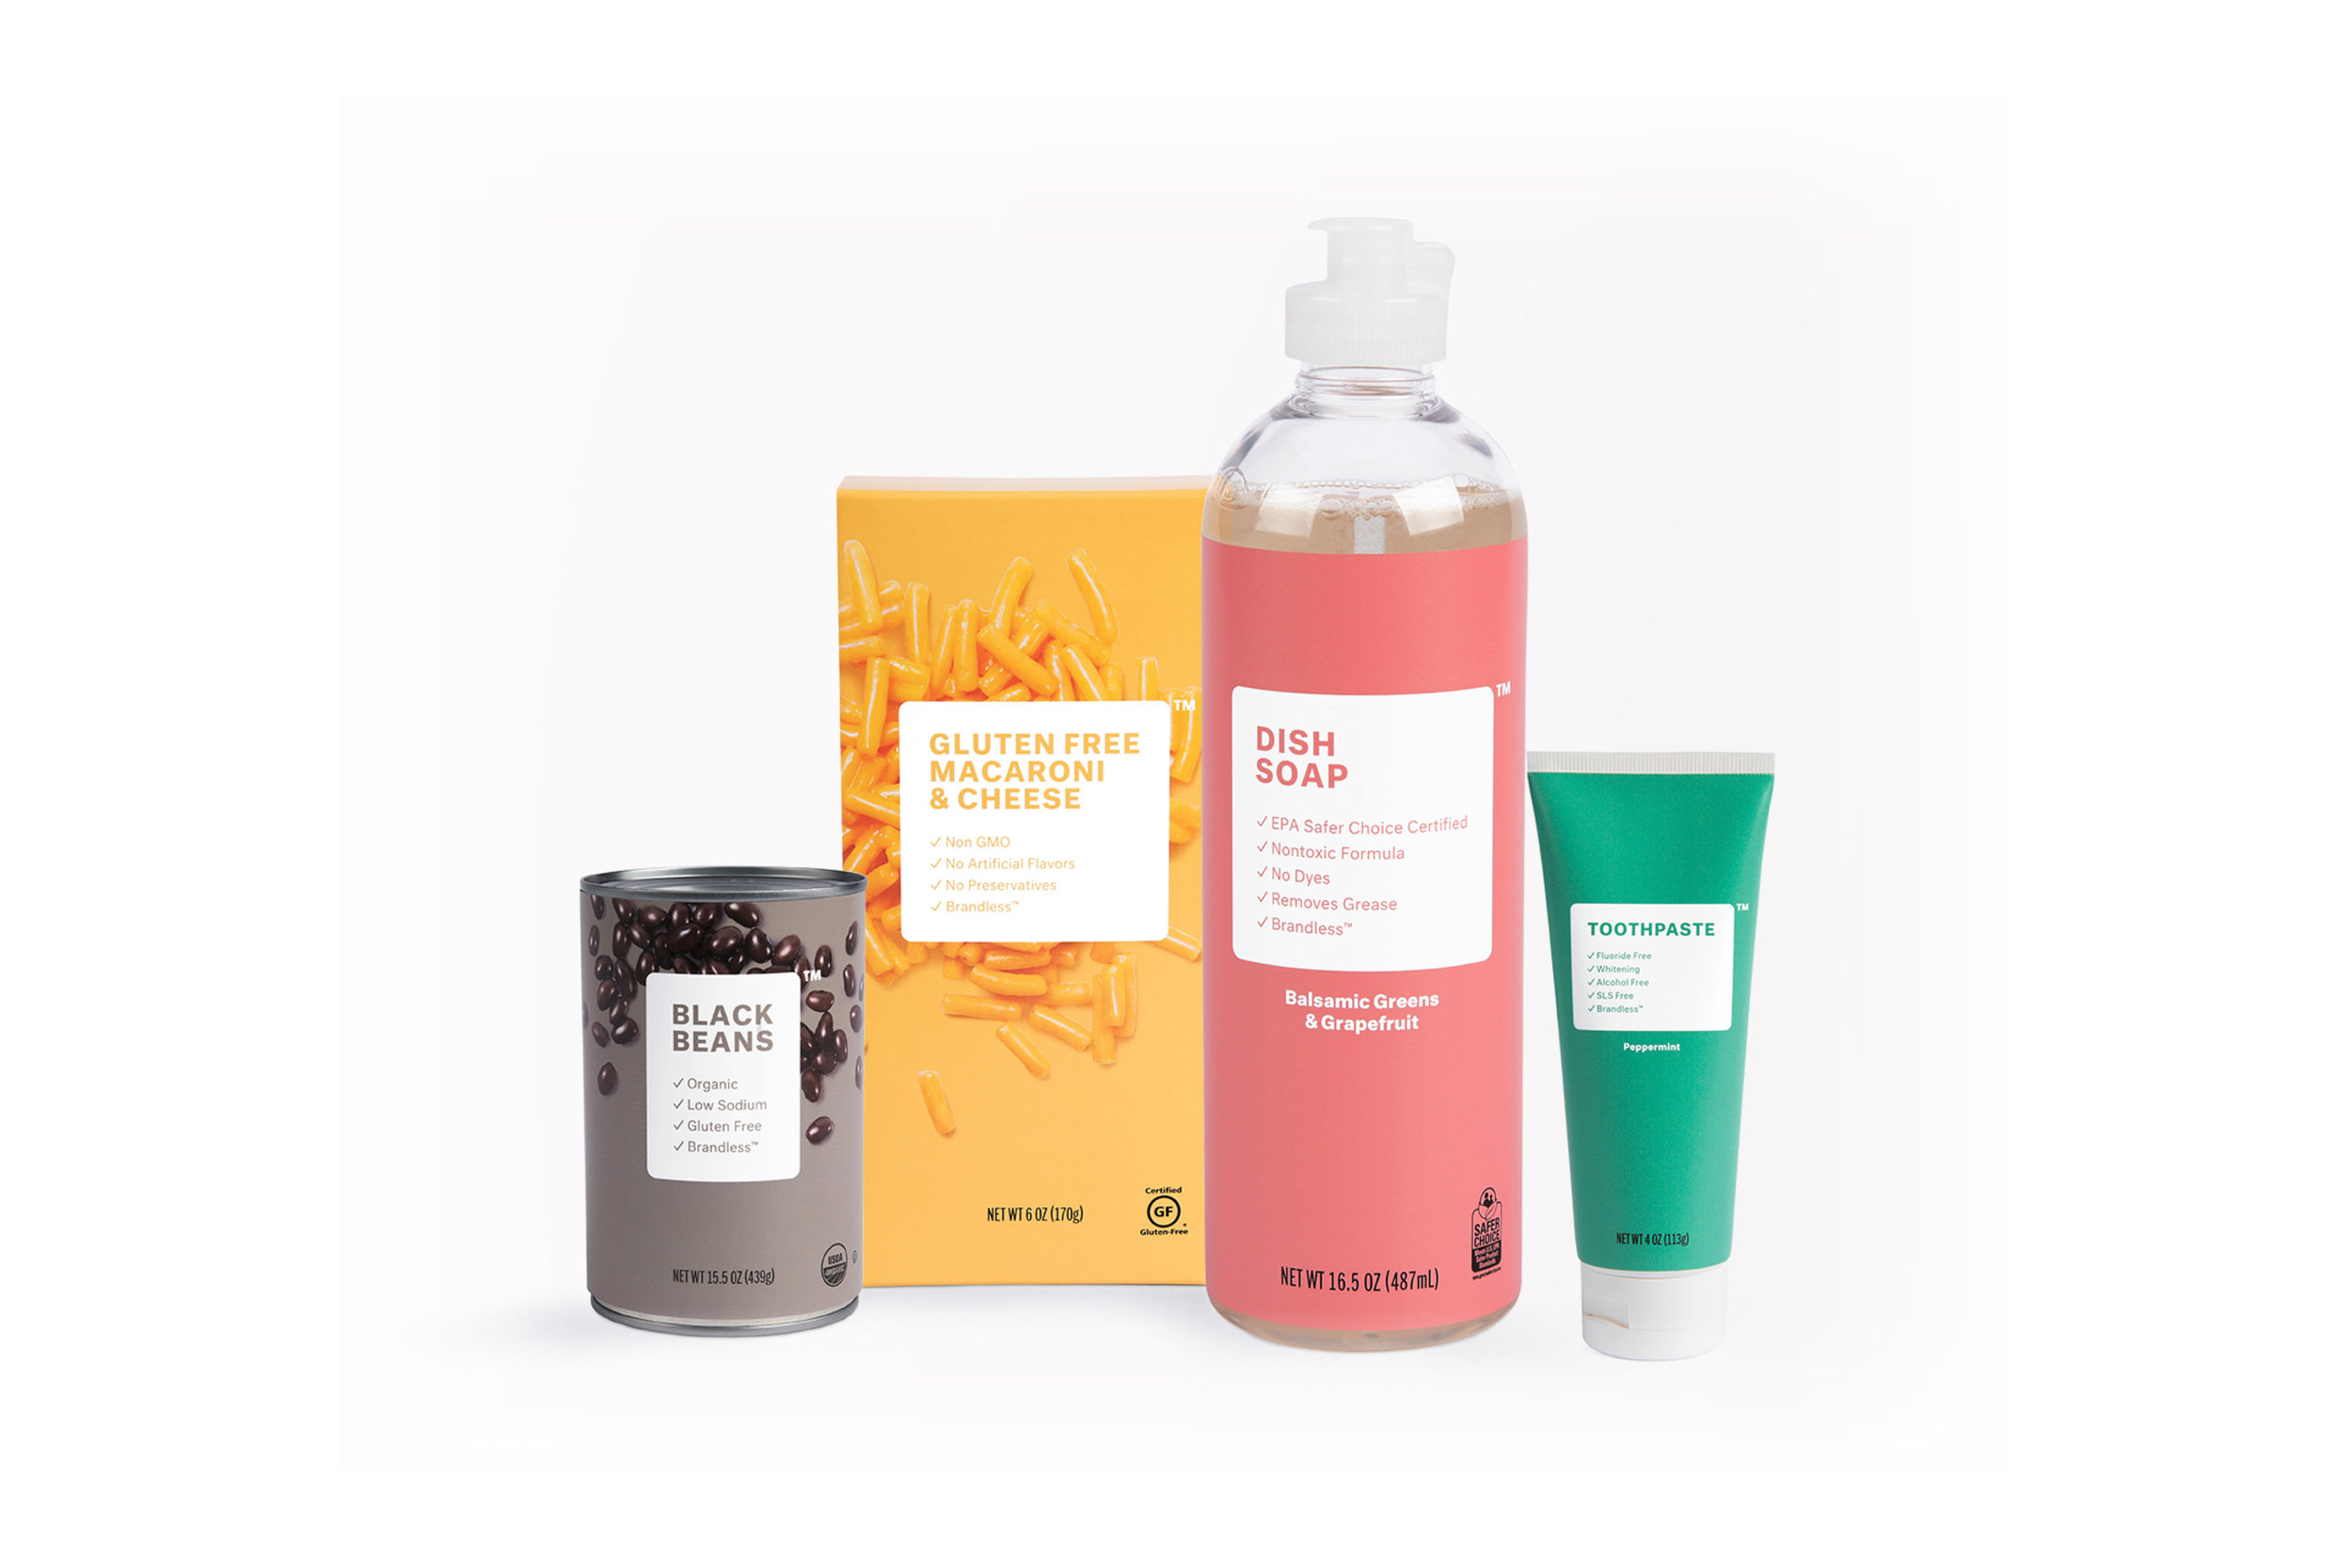 Everyday essentials by Brandless